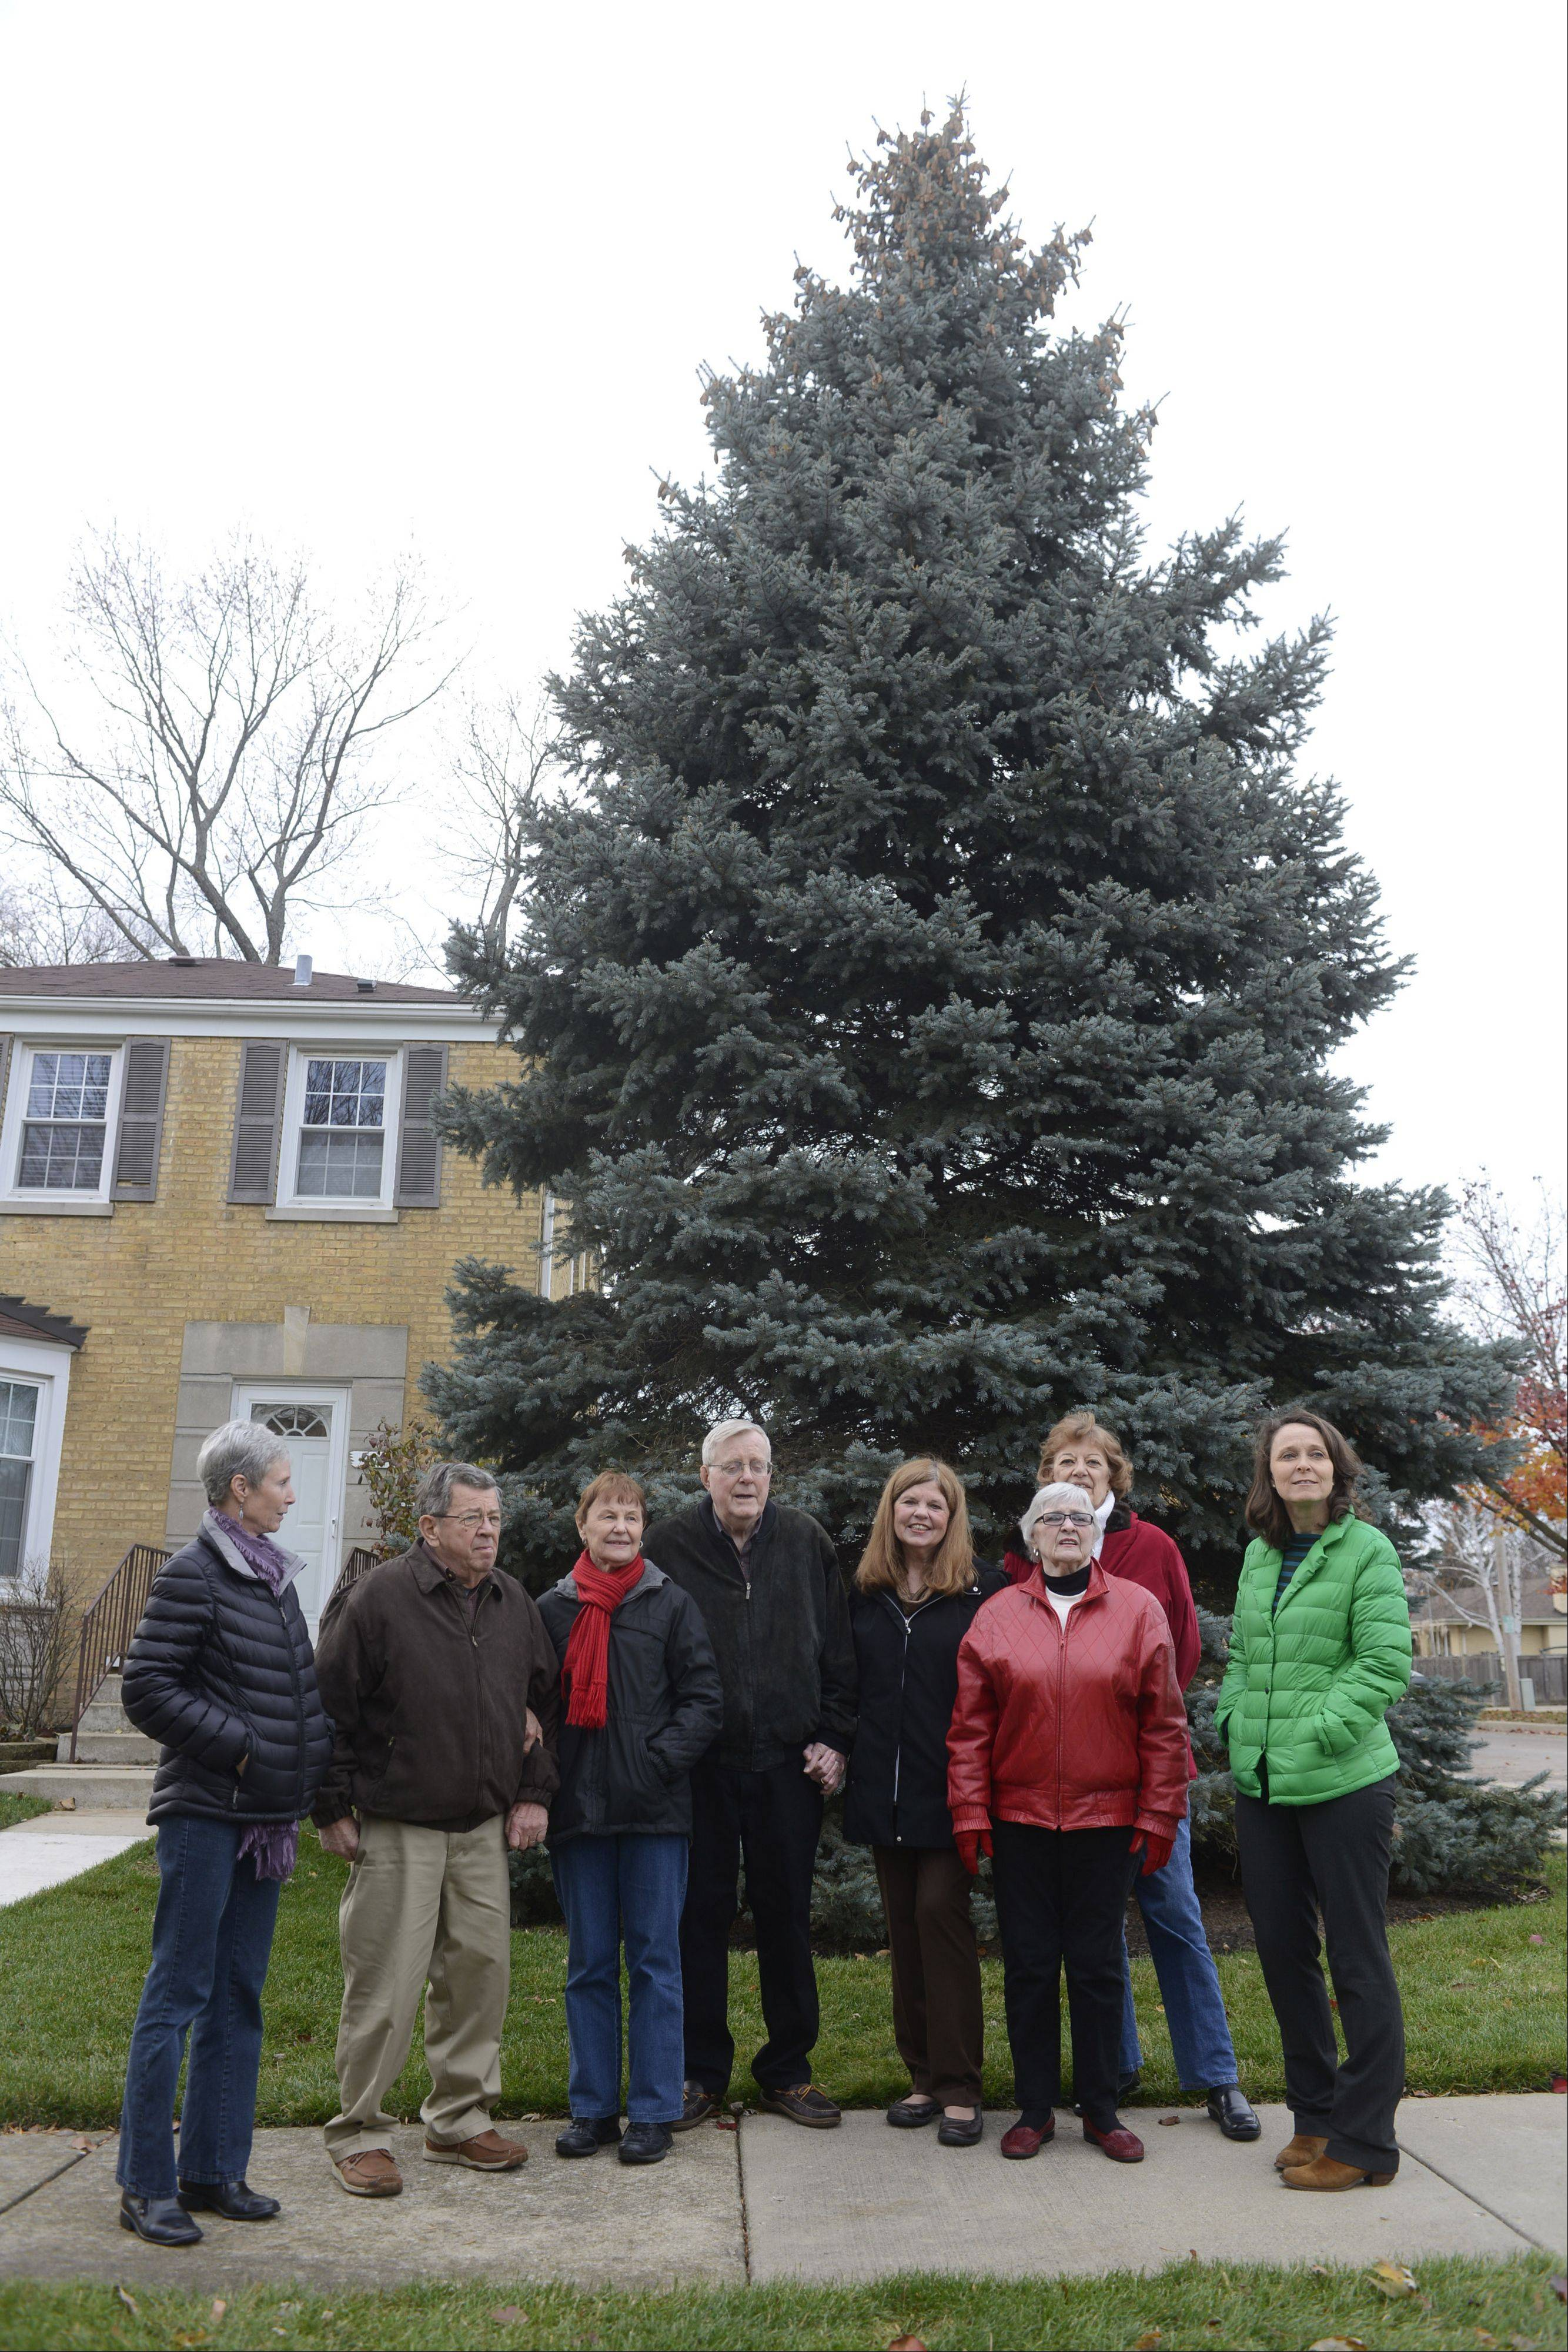 Having all played a part when the tree was planted on May 7, 1992, Mount Prospect neighbors, left to right, Sue Lello, Larry and Rosemary Hinkemeyer, Tom and Renae McGovern, Carol Tortorello, Roberta Edmonson and Lorelei McDermott stand in front of the tree.